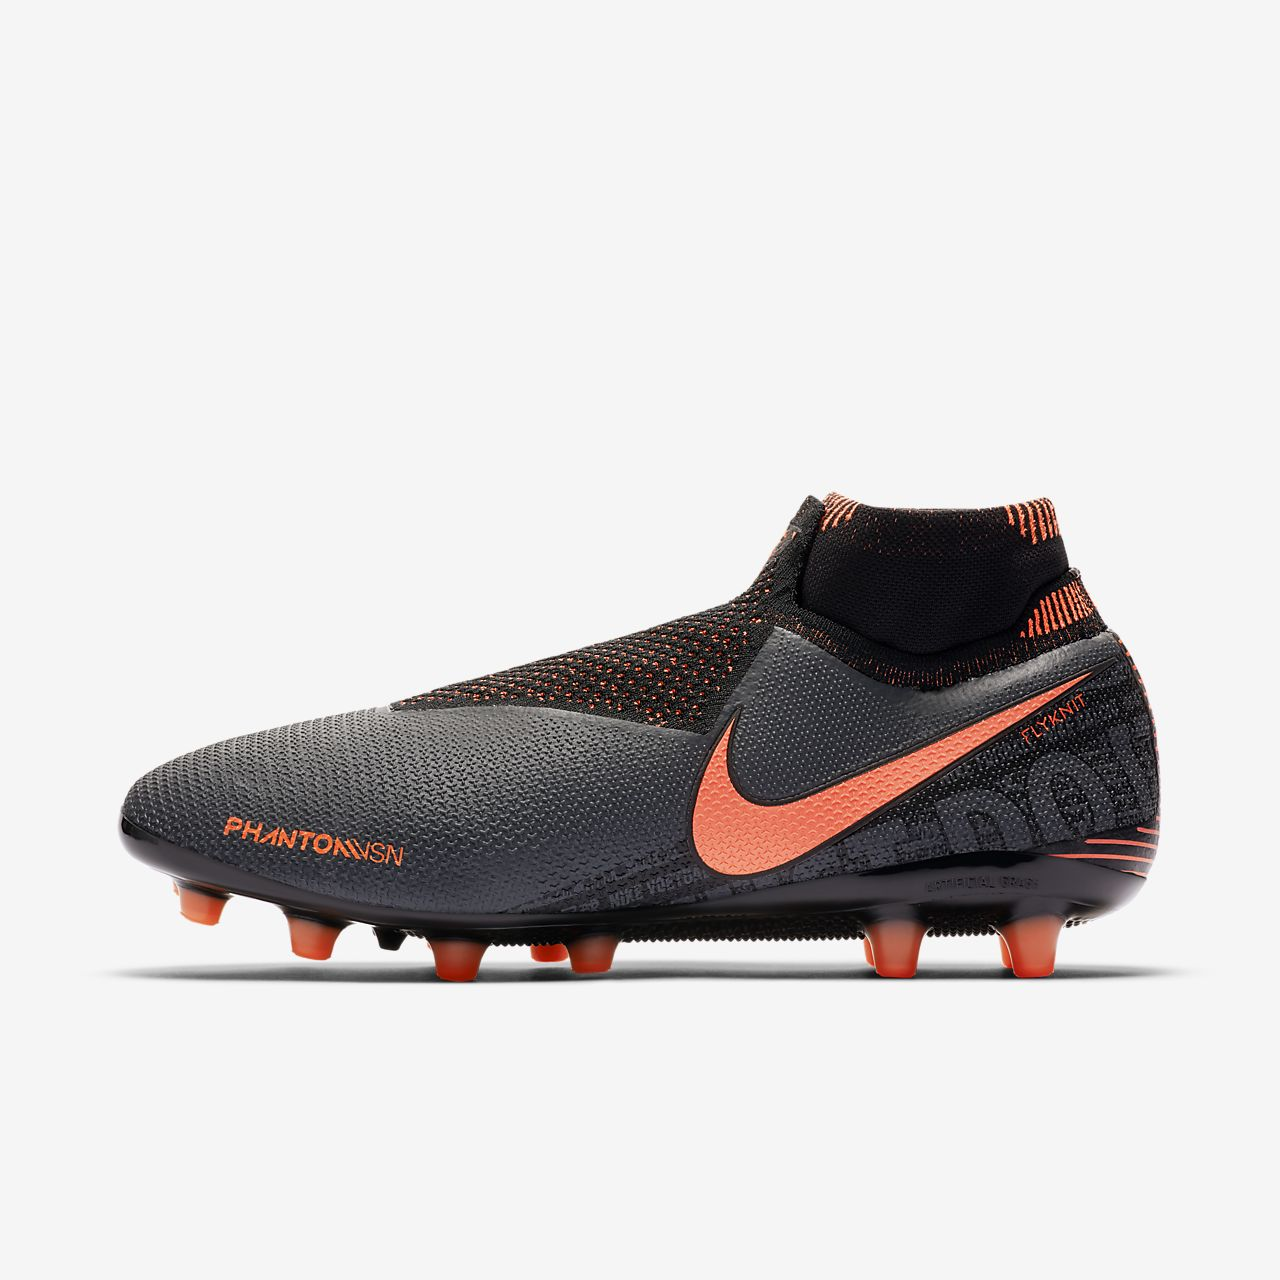 Nike Nike Phantom Vision Elite Dynamic Fit AG PRO from Nike